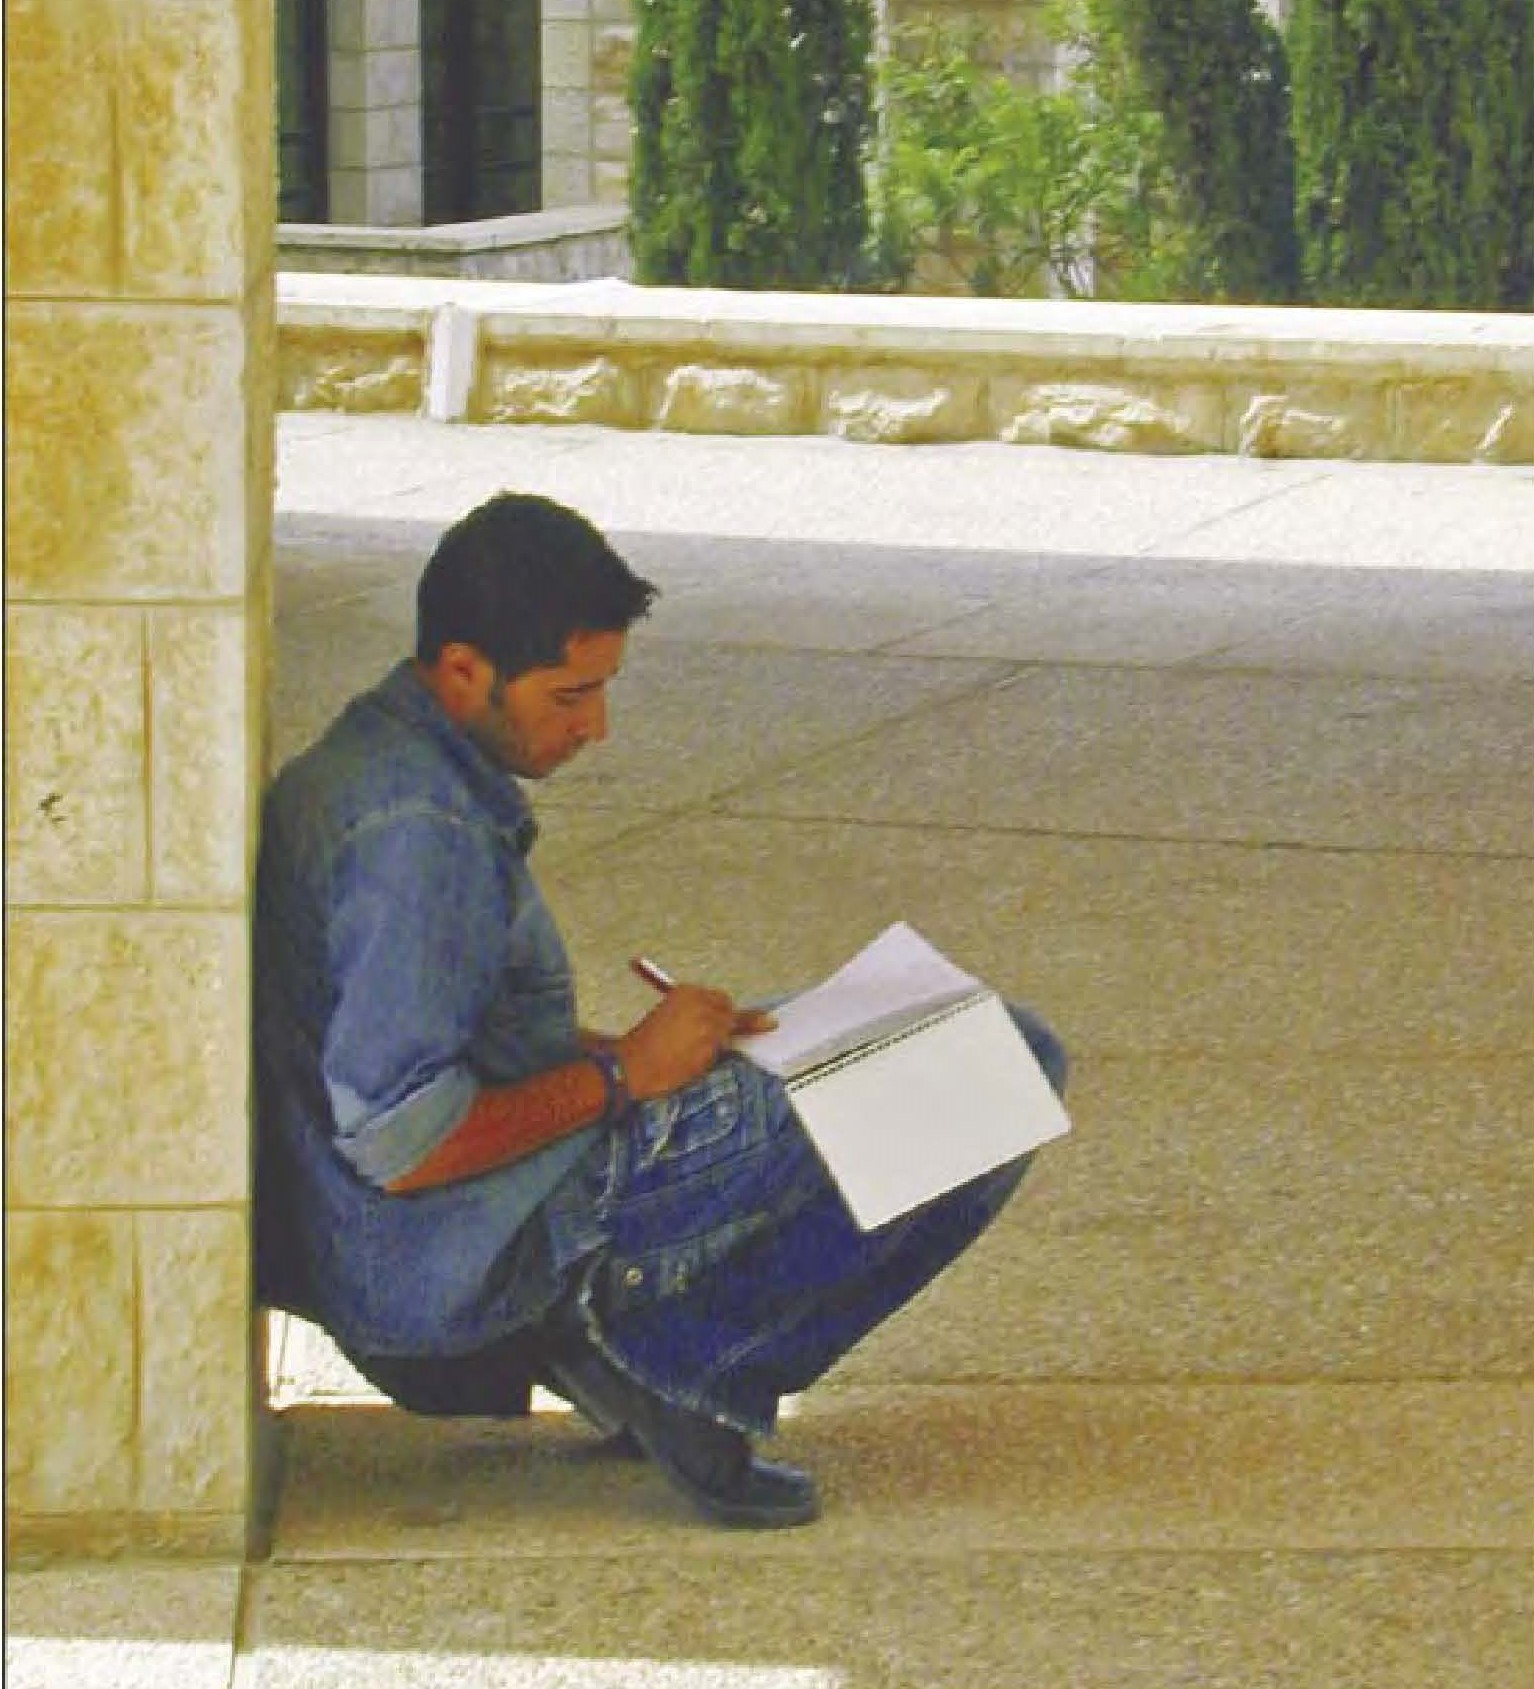 Palestinian student working in notebook